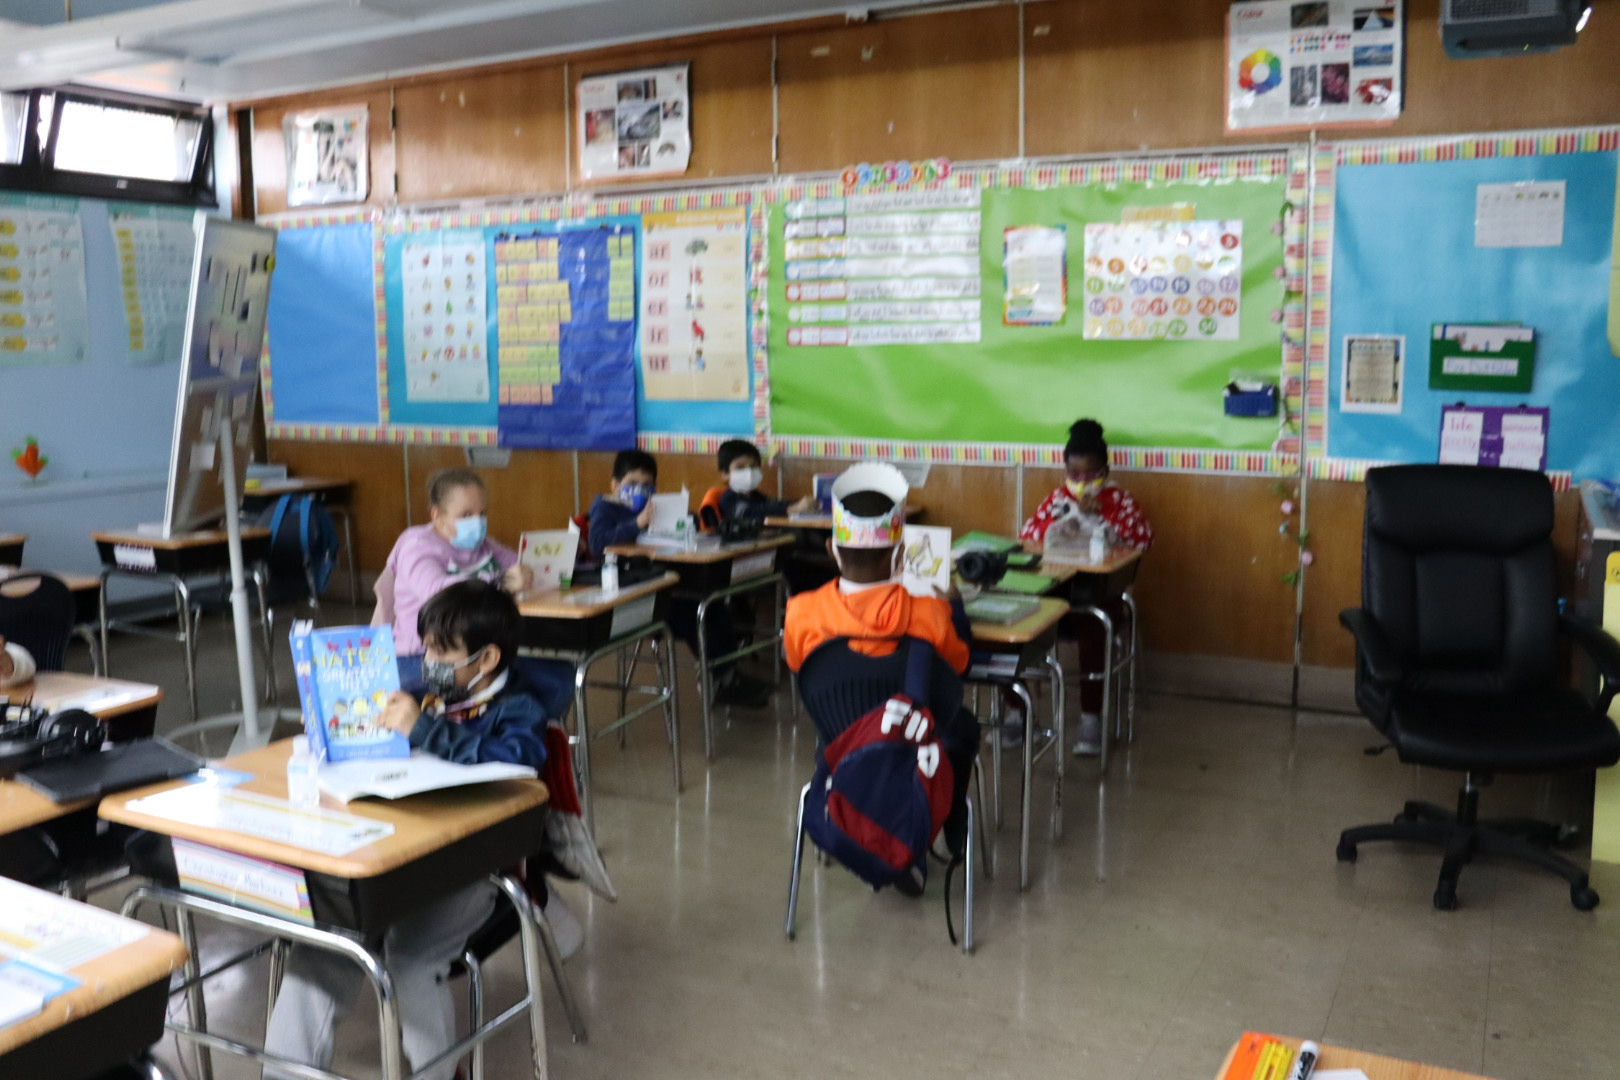 Ms. Reda and Ms. Crawley's 2nd grade class reading.